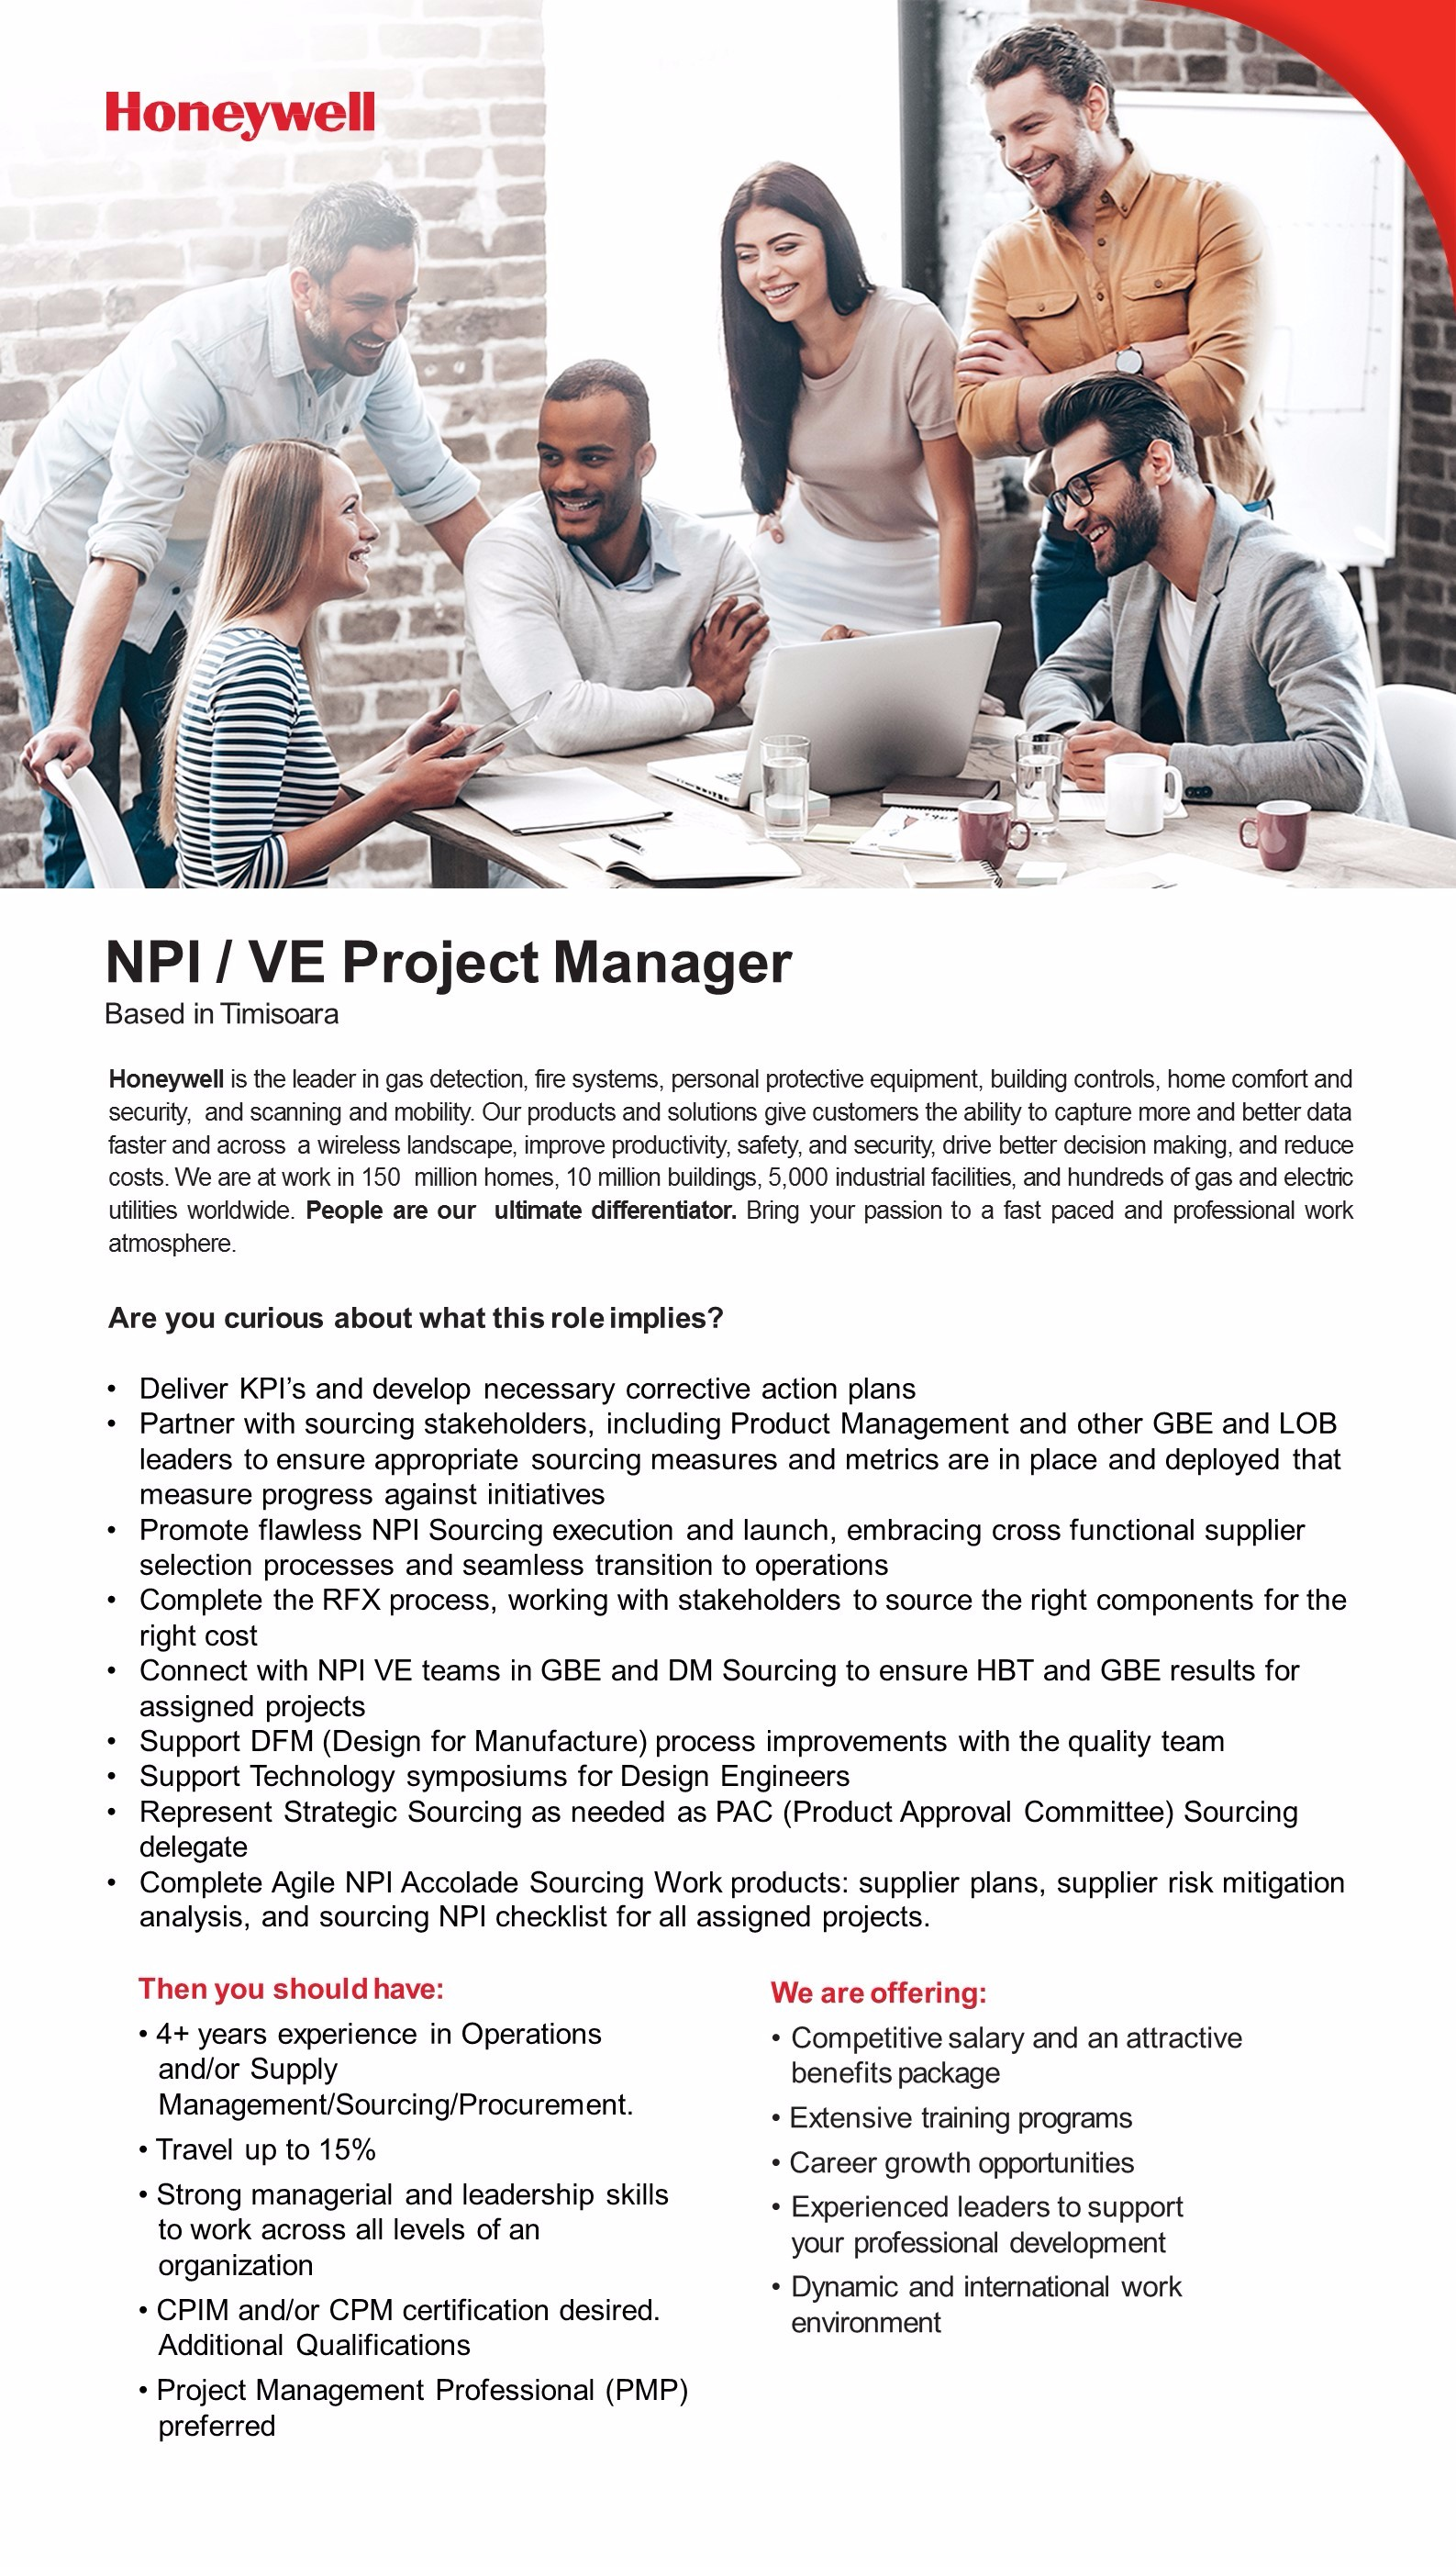 NPI VE Project Manager